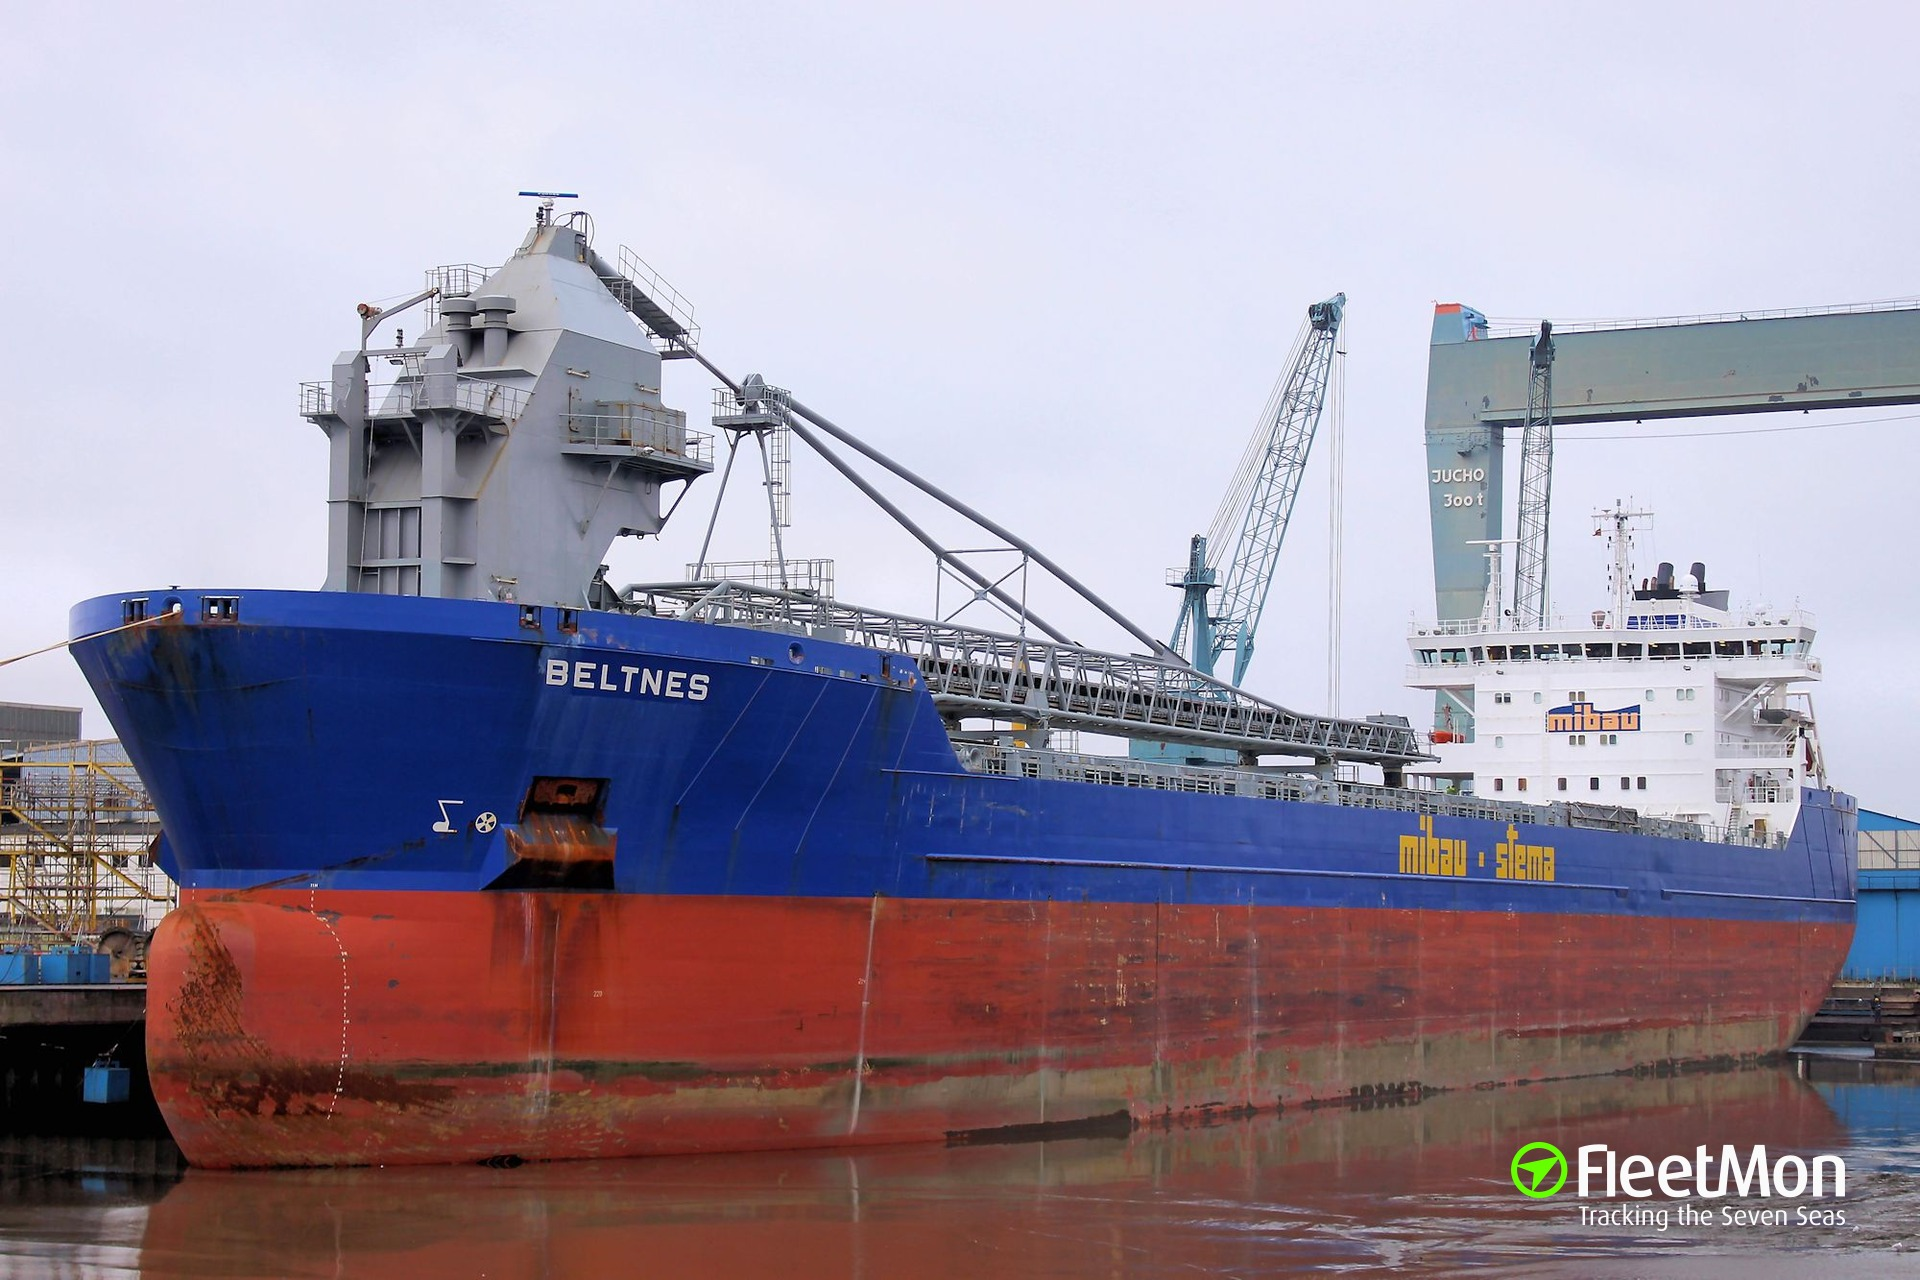 Bulk carrier Beltnes allision